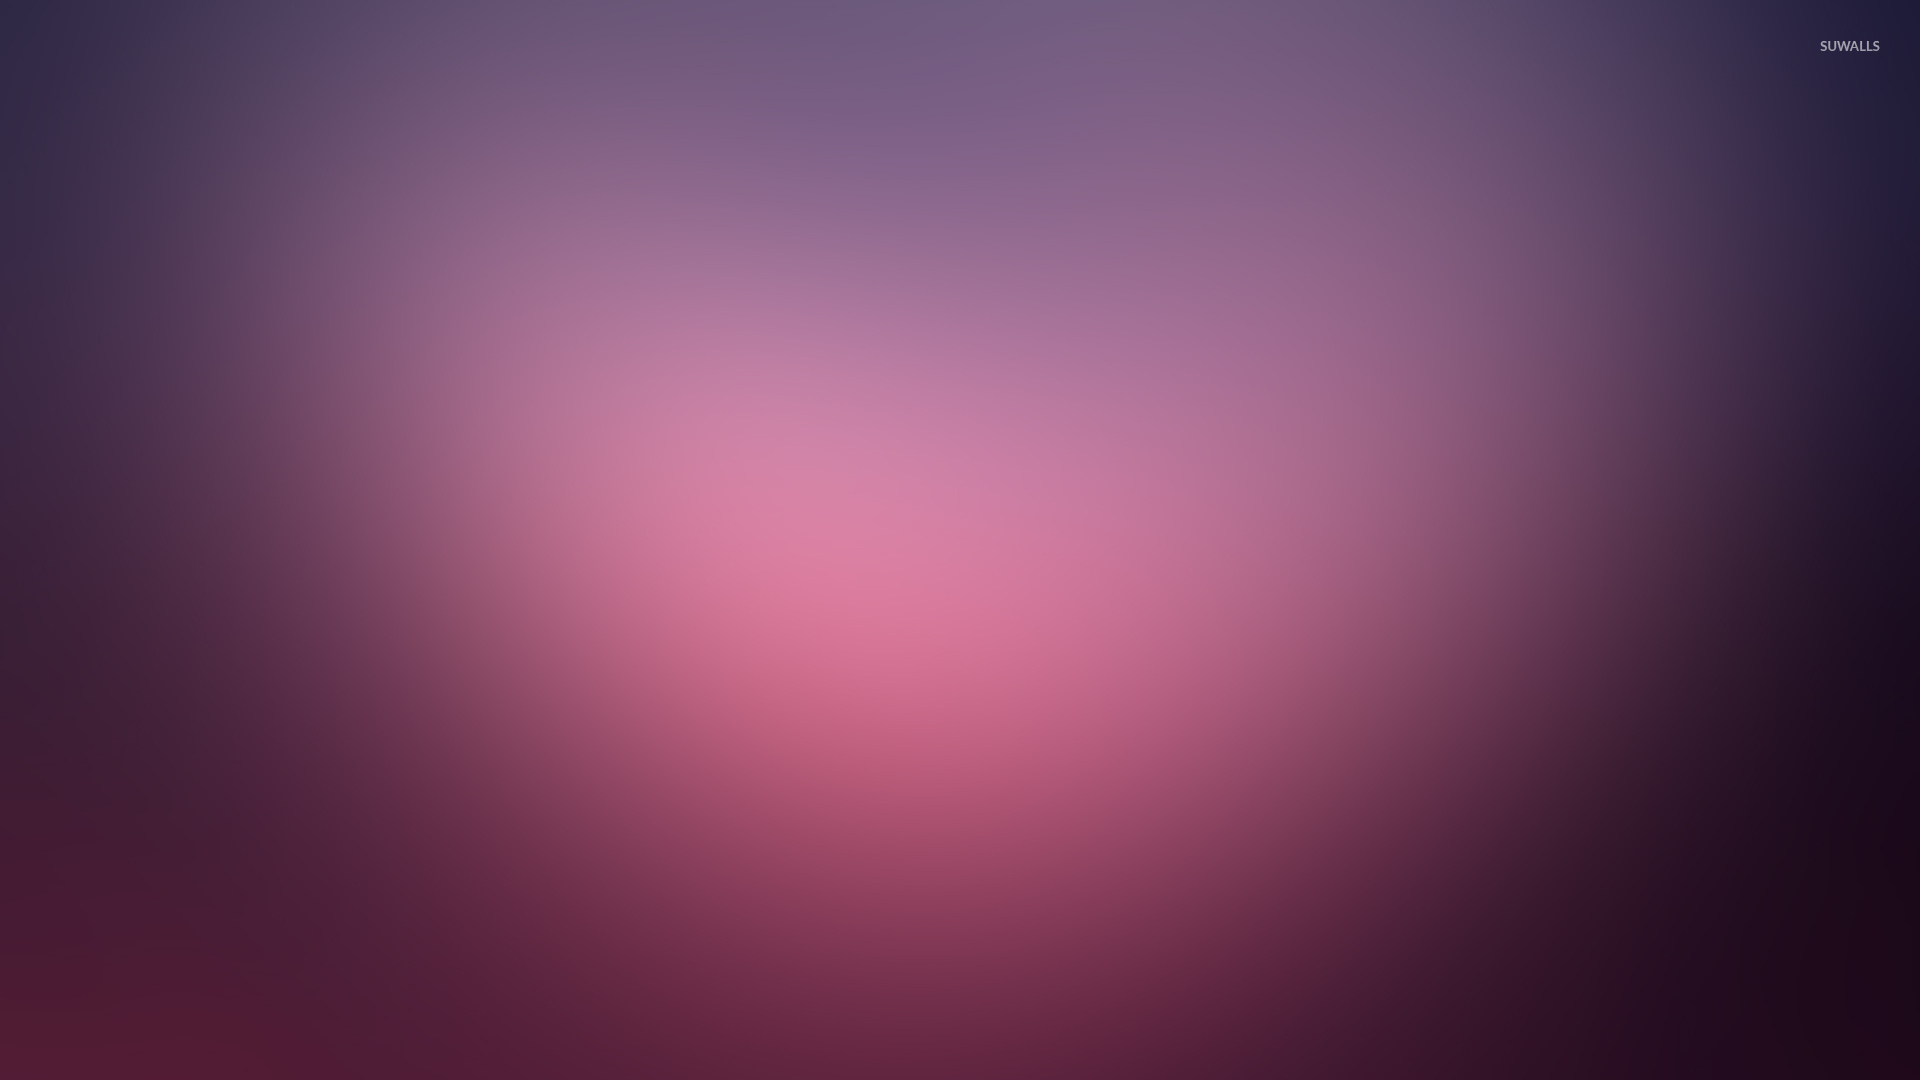 Simple Wallpaper  Abstract Wallpapers  #3870